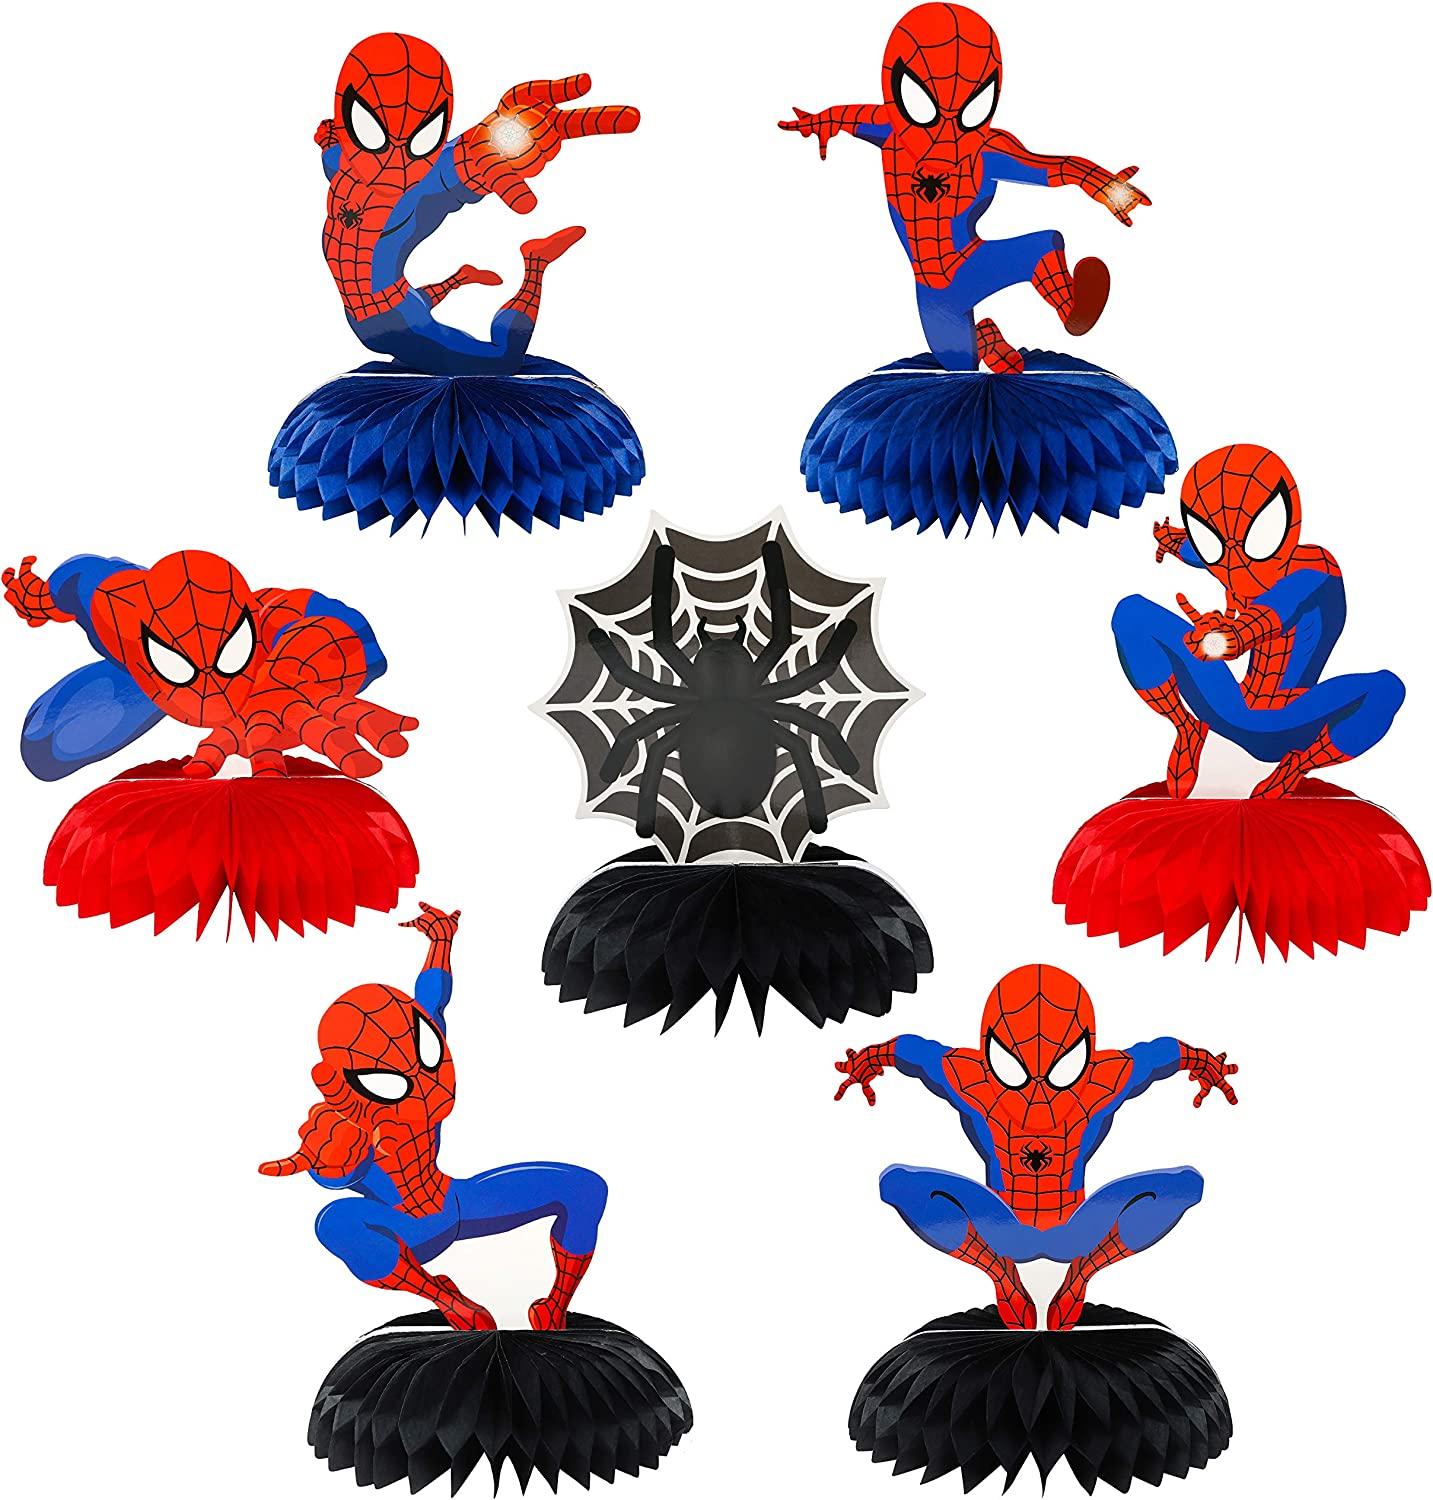 PANTIDE 7Pcs Spiderman Honeycomb Centerpieces Table Topper, Double-Sided Spiderman Table Decor, Superhero Themed Party Favors Decorations Photo Booth Props for Kids Birthday Party Supplies